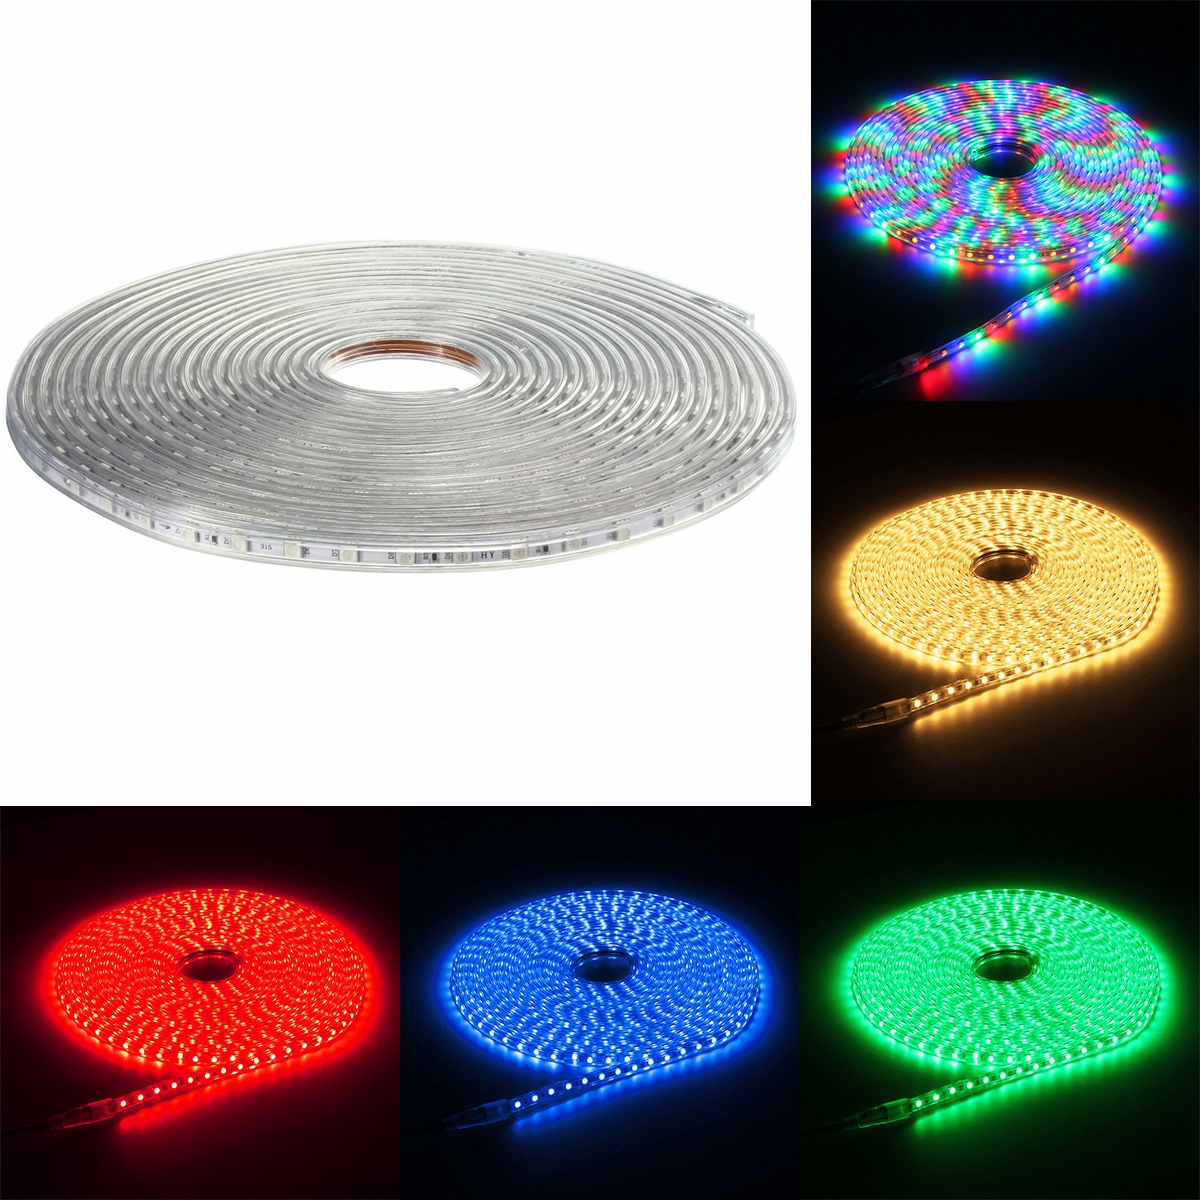 Outdoor 5050 Tape Light: 220V 13M 5050 LED SMD Outdoor Waterproof Flexible Tape